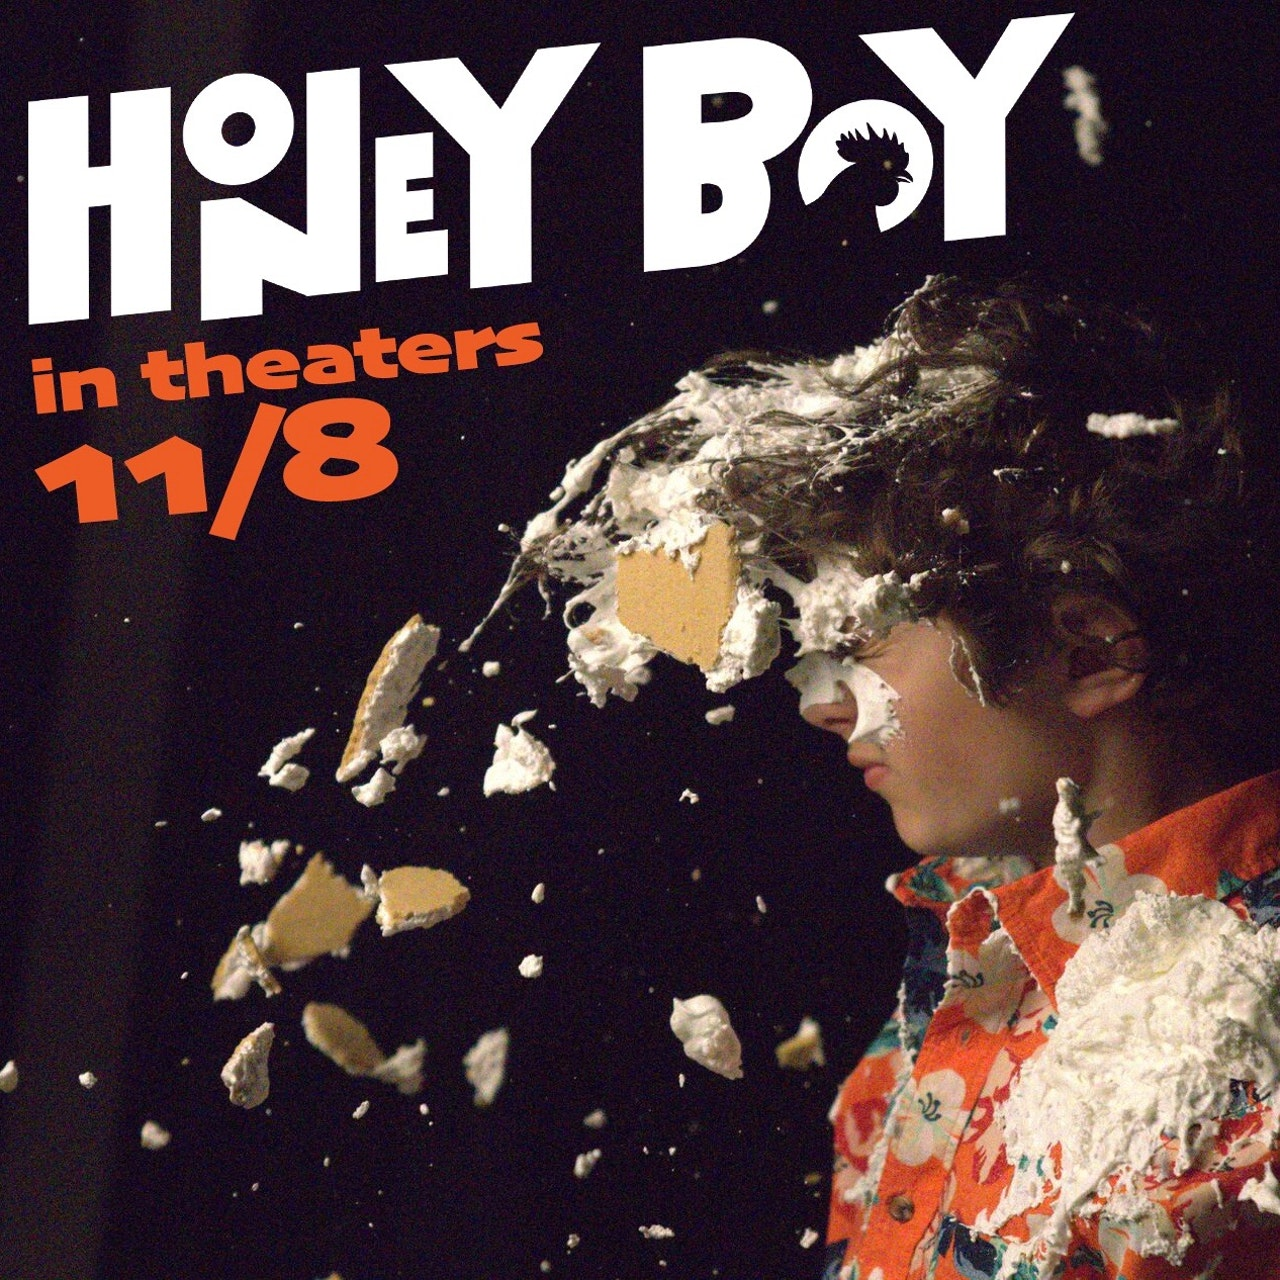 """Honey Boy"" in theatres on November 8th."